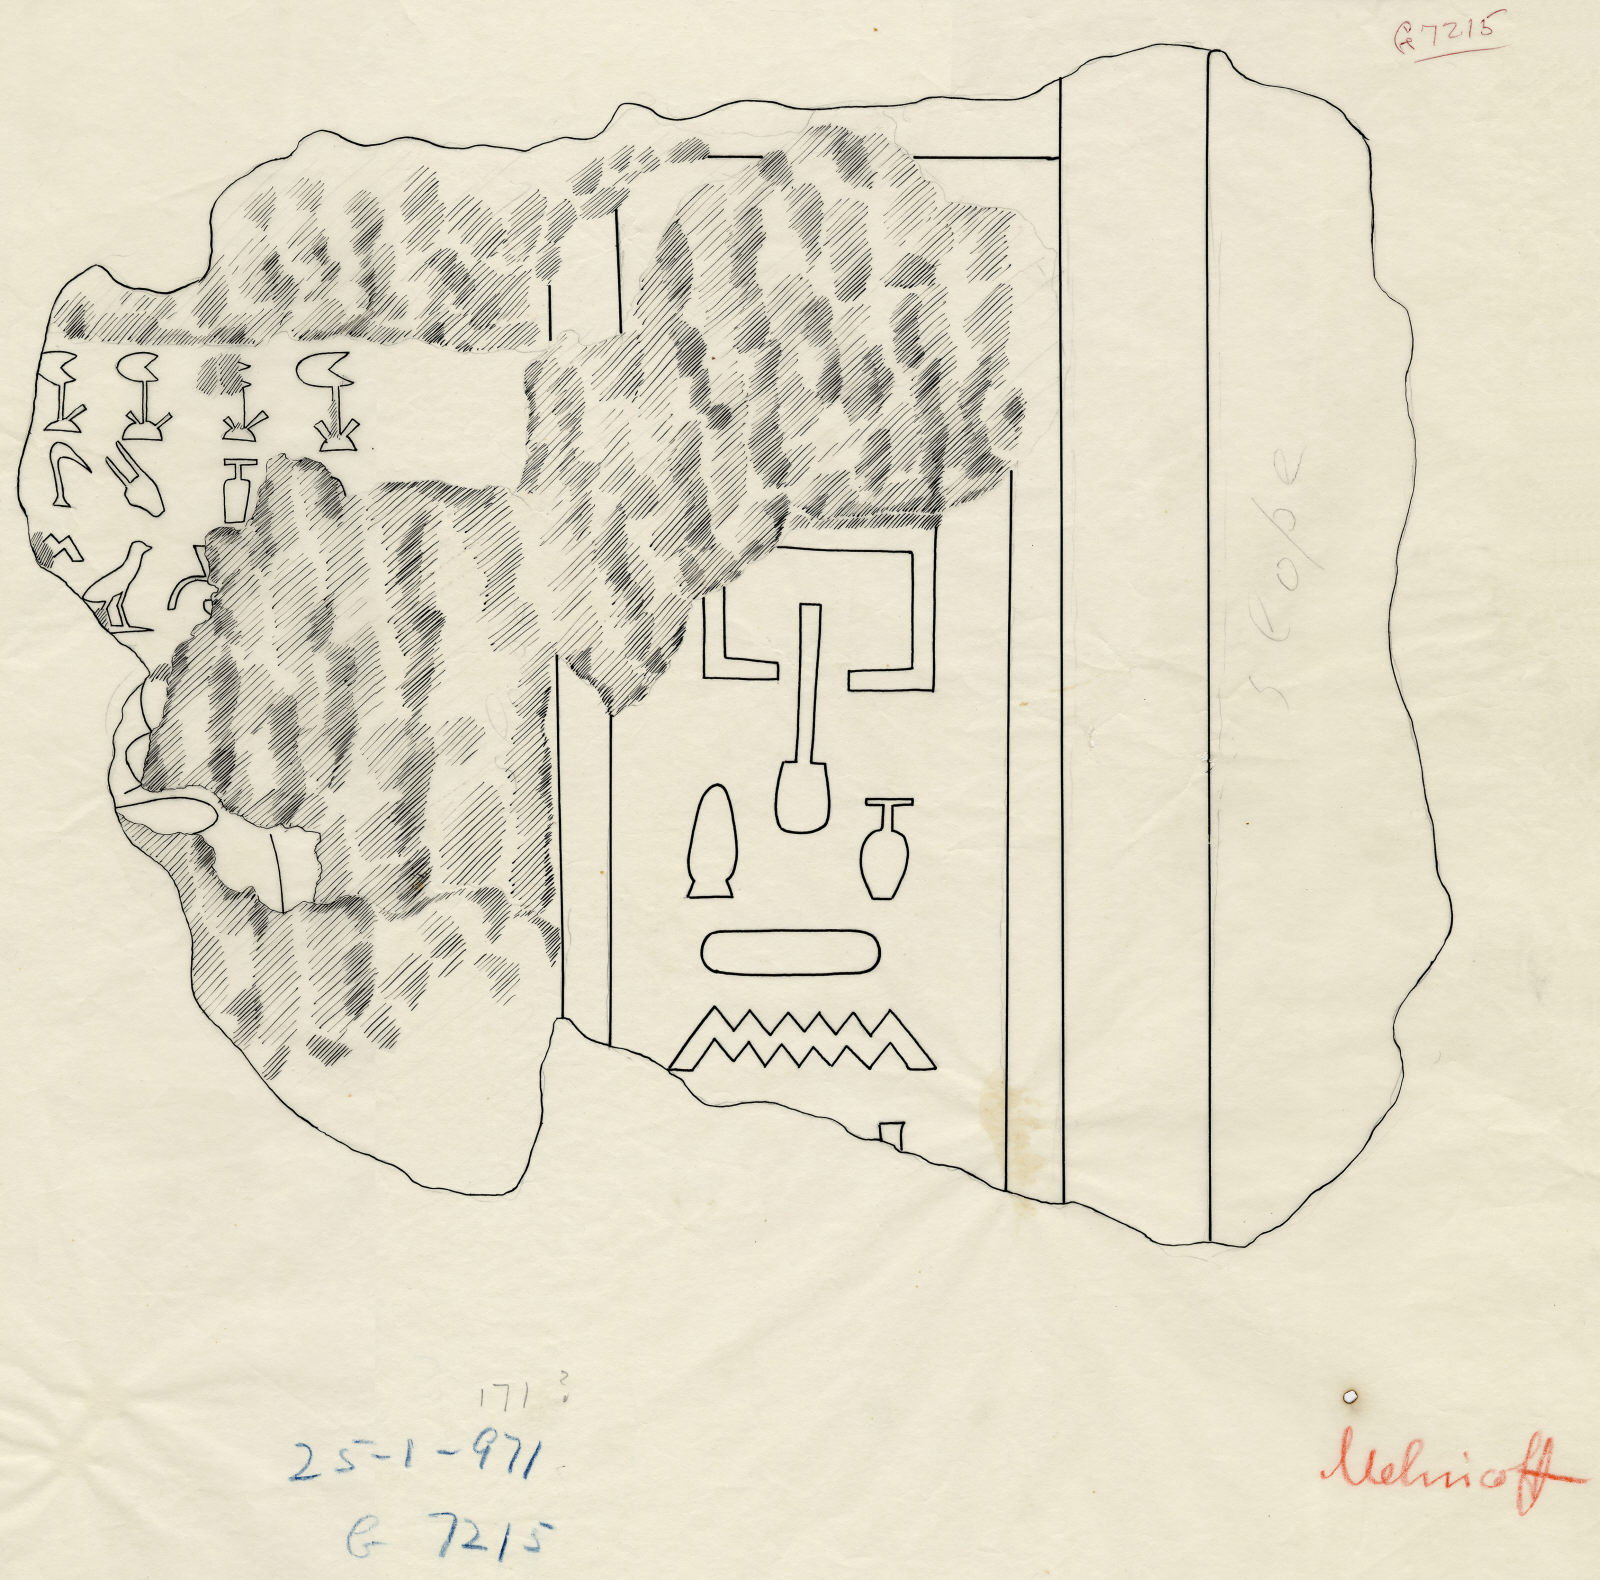 Drawings: G 7215: fragment of relief